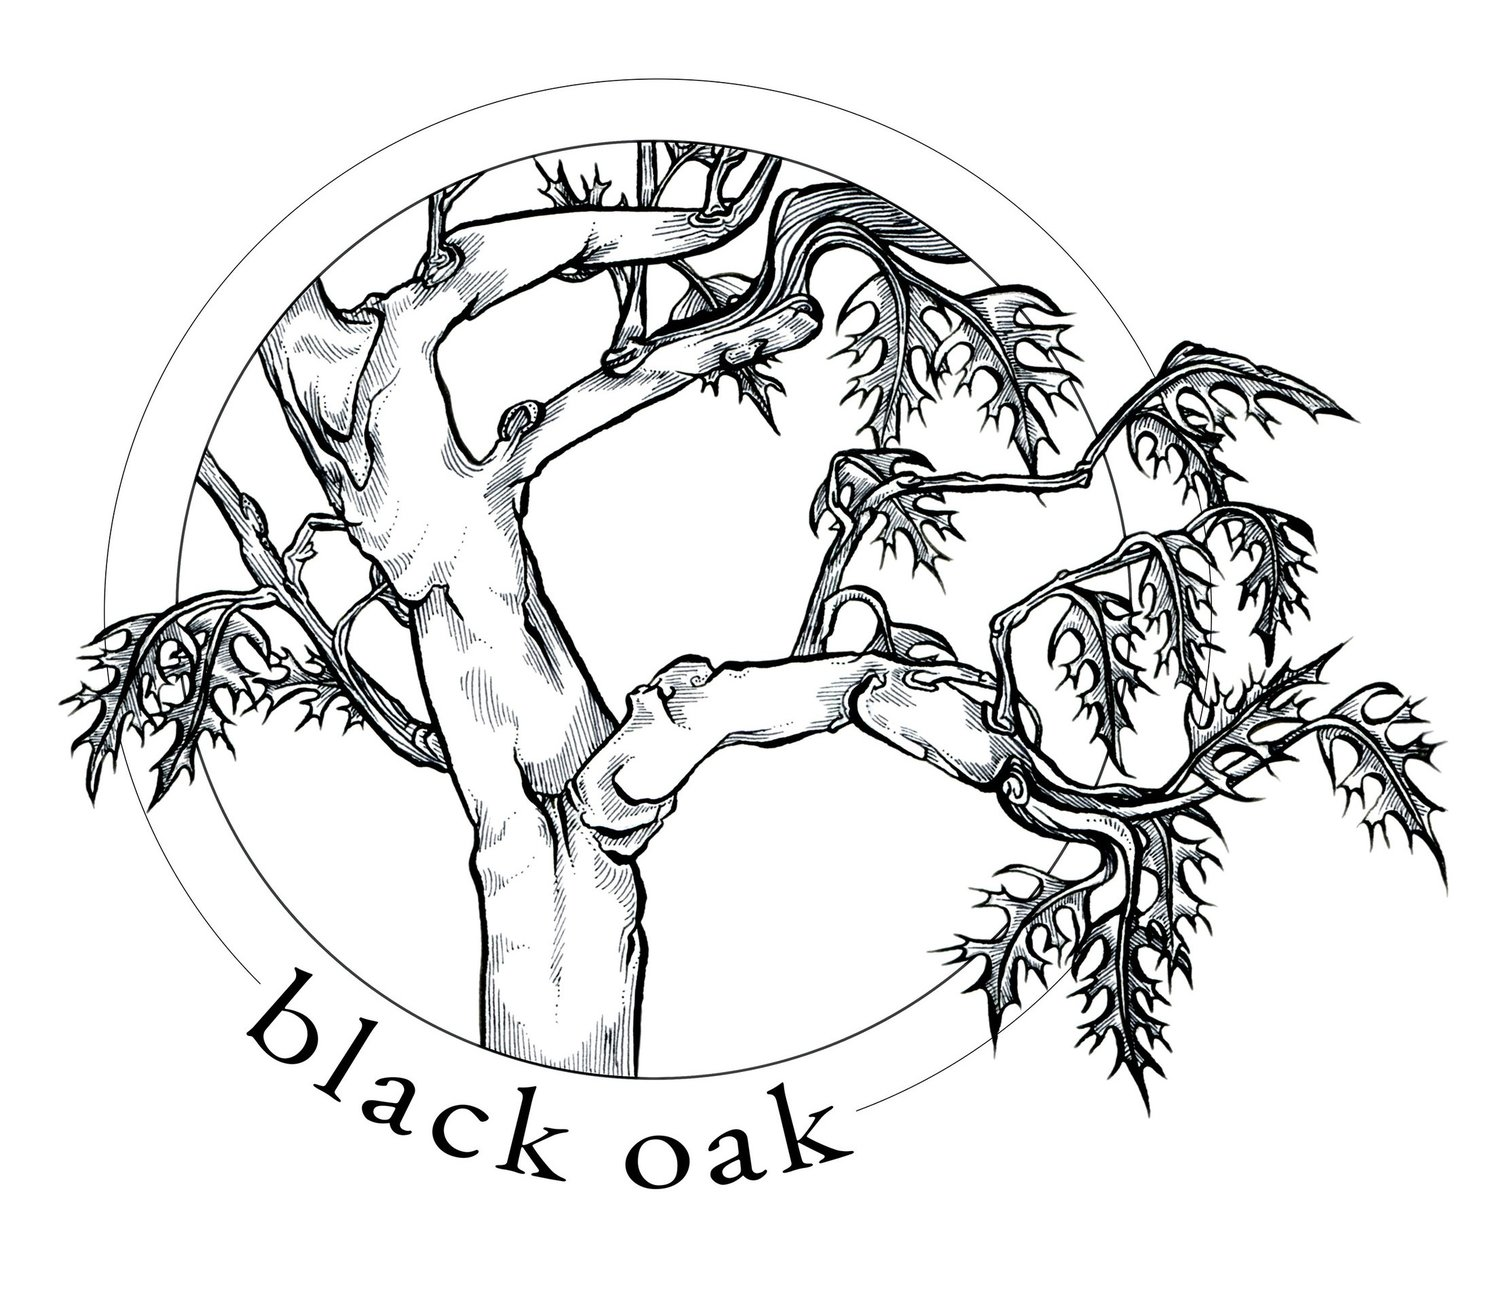 Black Oak Estate & Appraisal Services